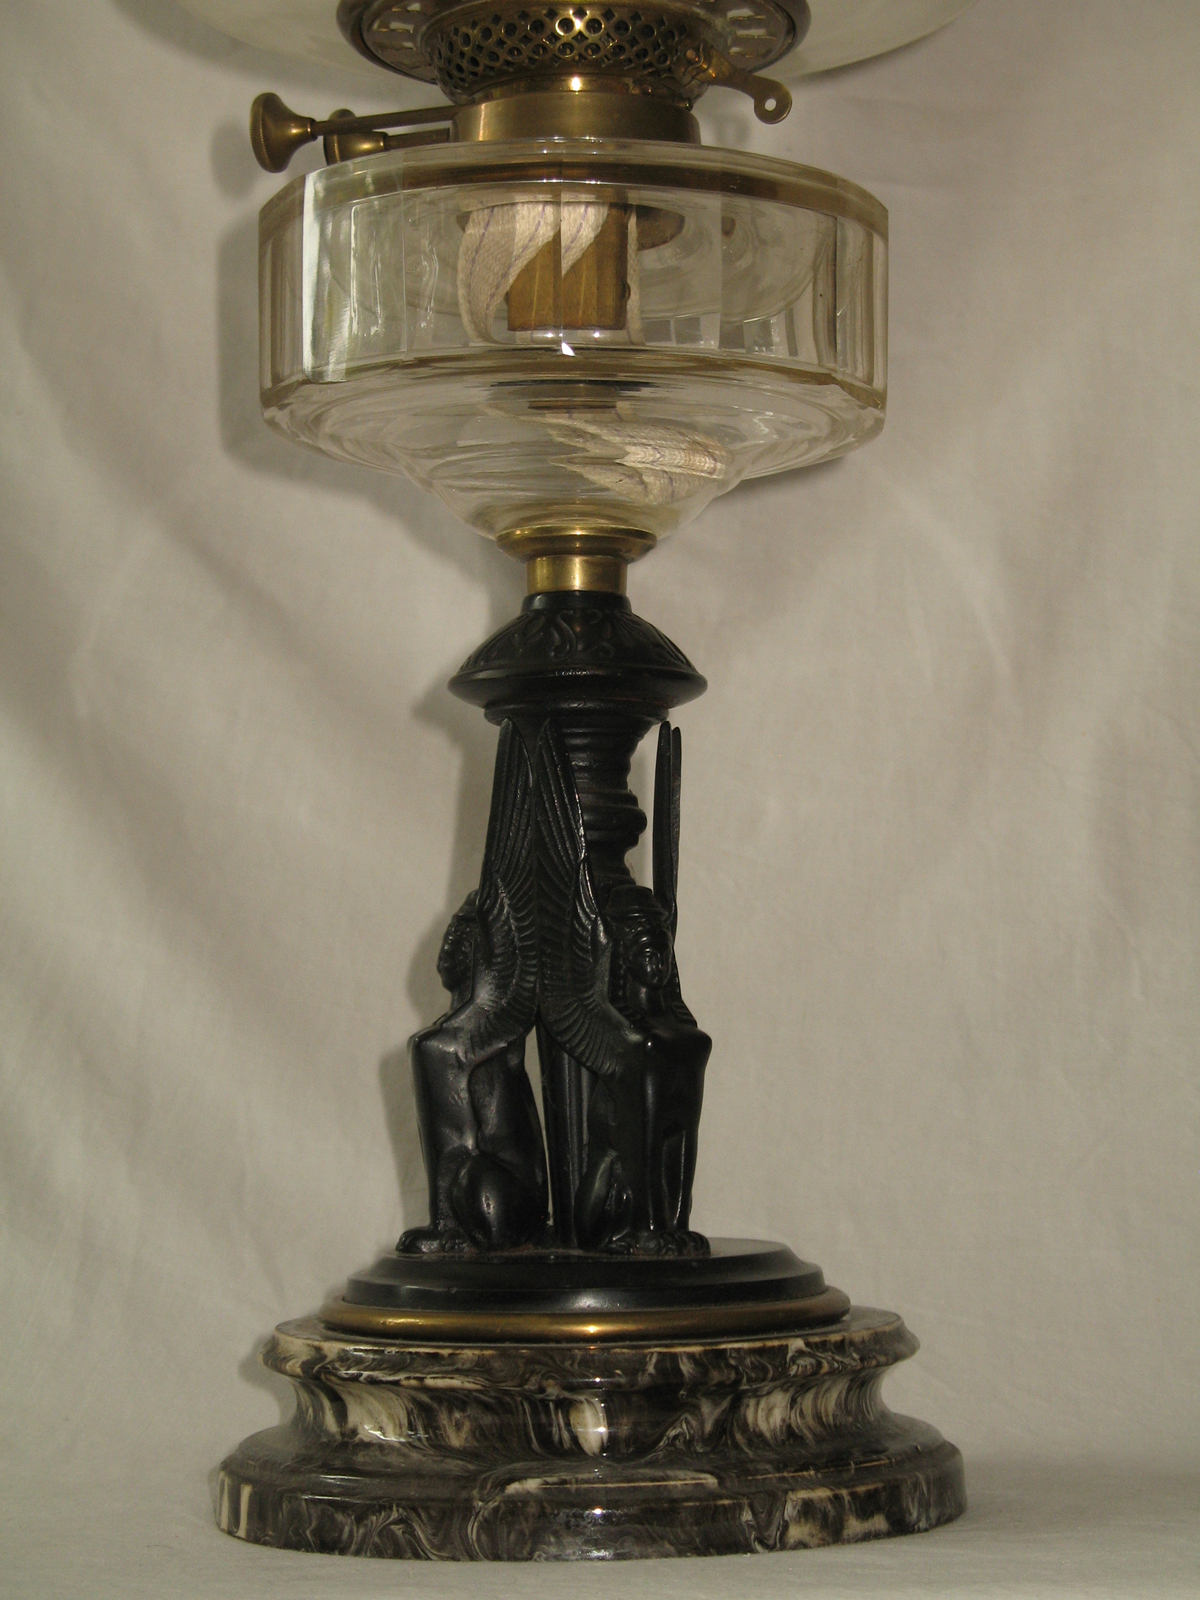 double duplex burner oil lamp for sale classifieds. Black Bedroom Furniture Sets. Home Design Ideas